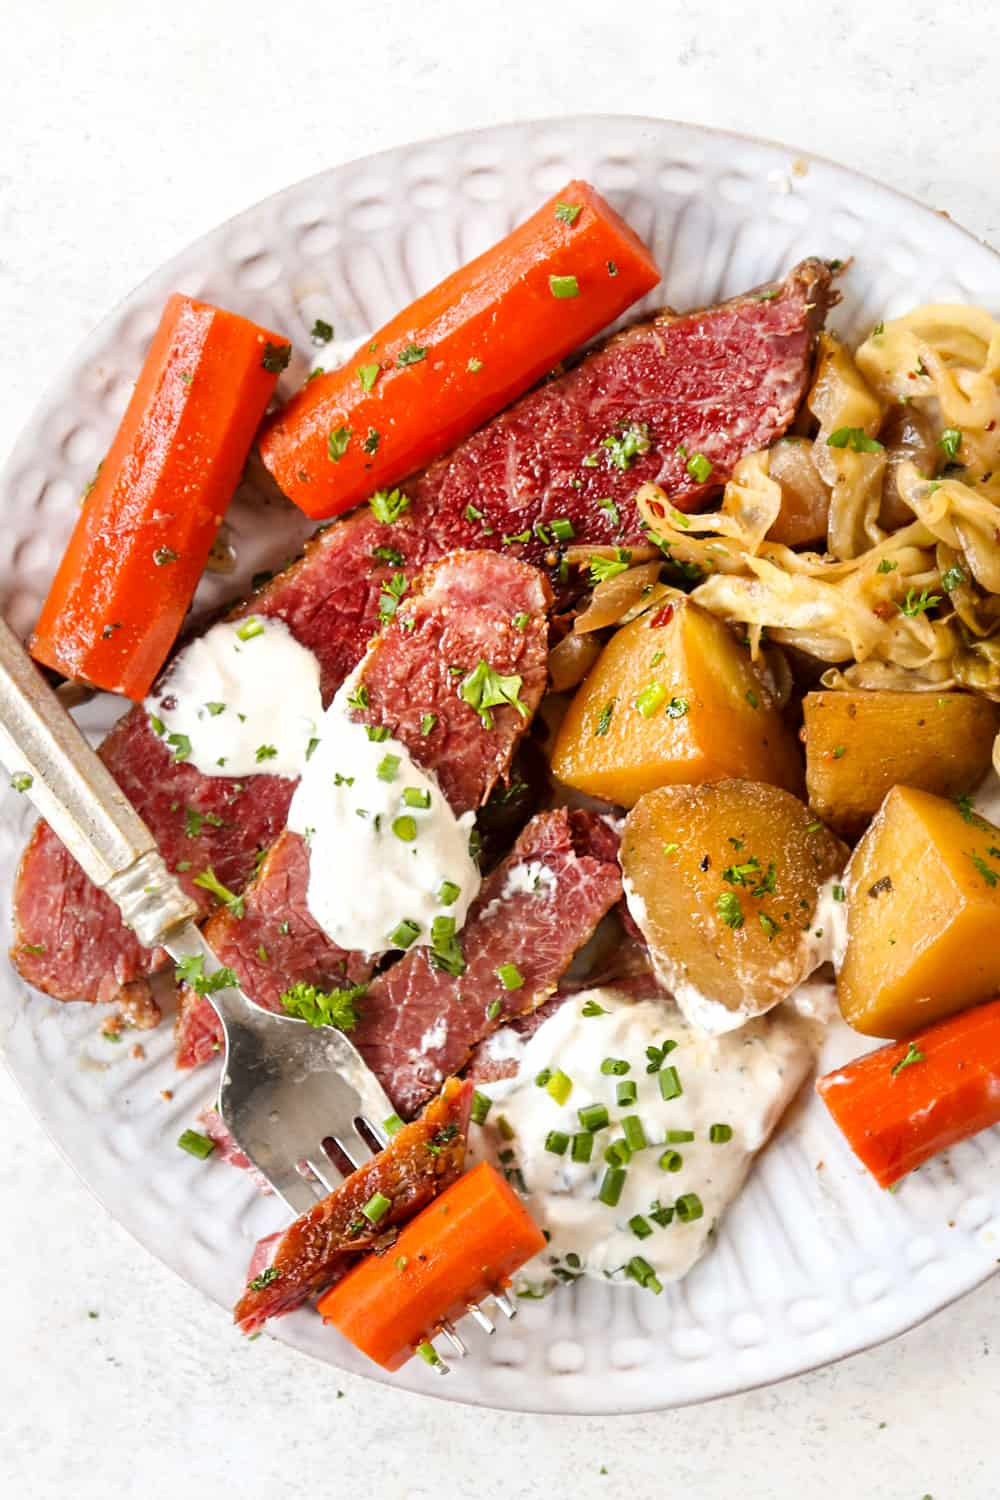 top view of corned beef brisket sliced on a white plate with cabbage, potatoes and carrots